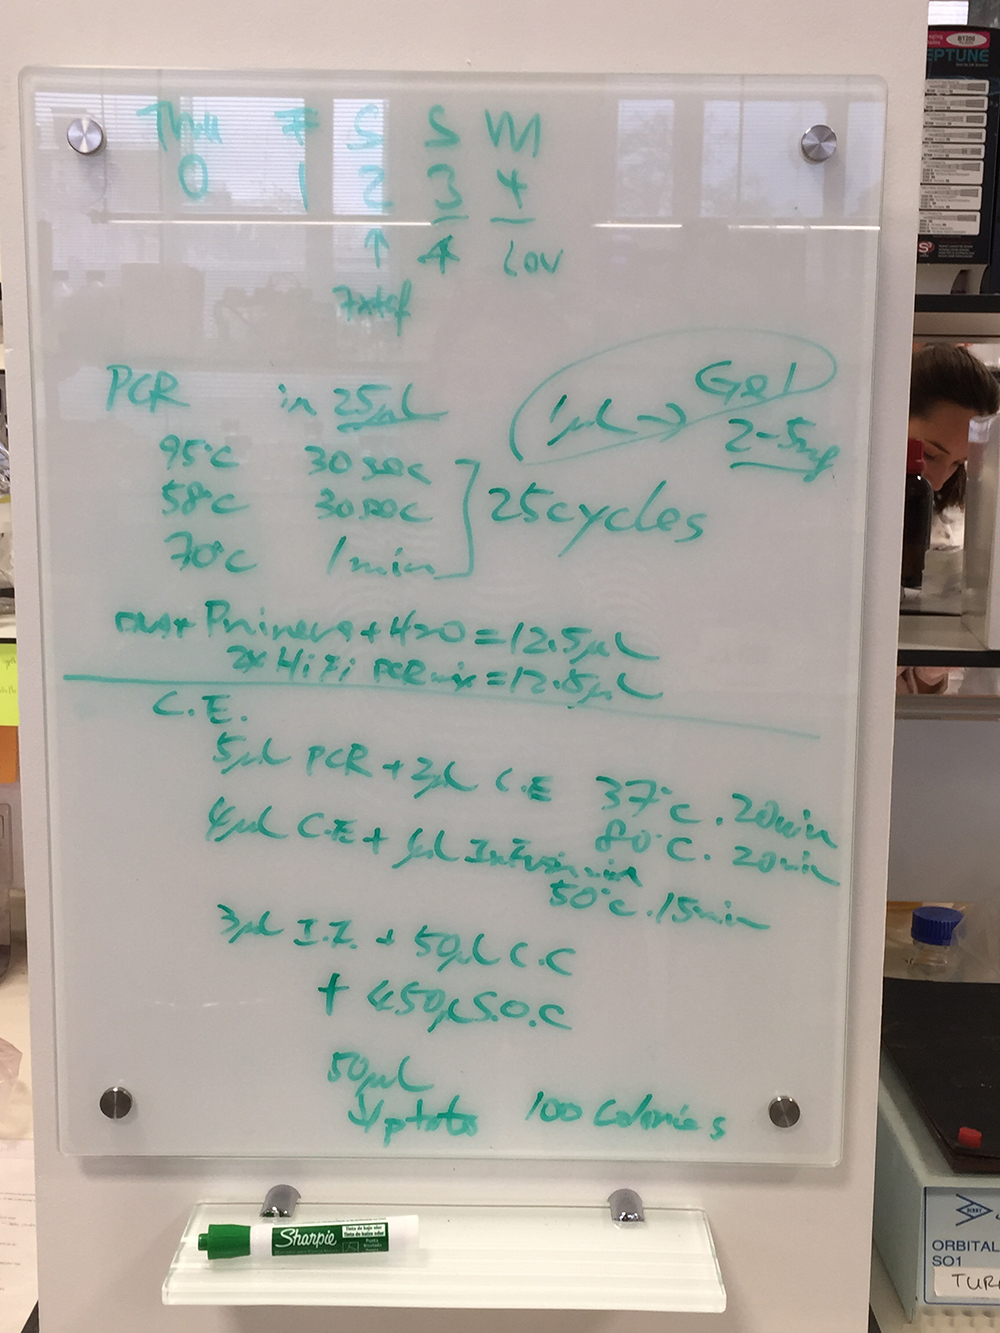 white board instructions - PCR_7844.jpg